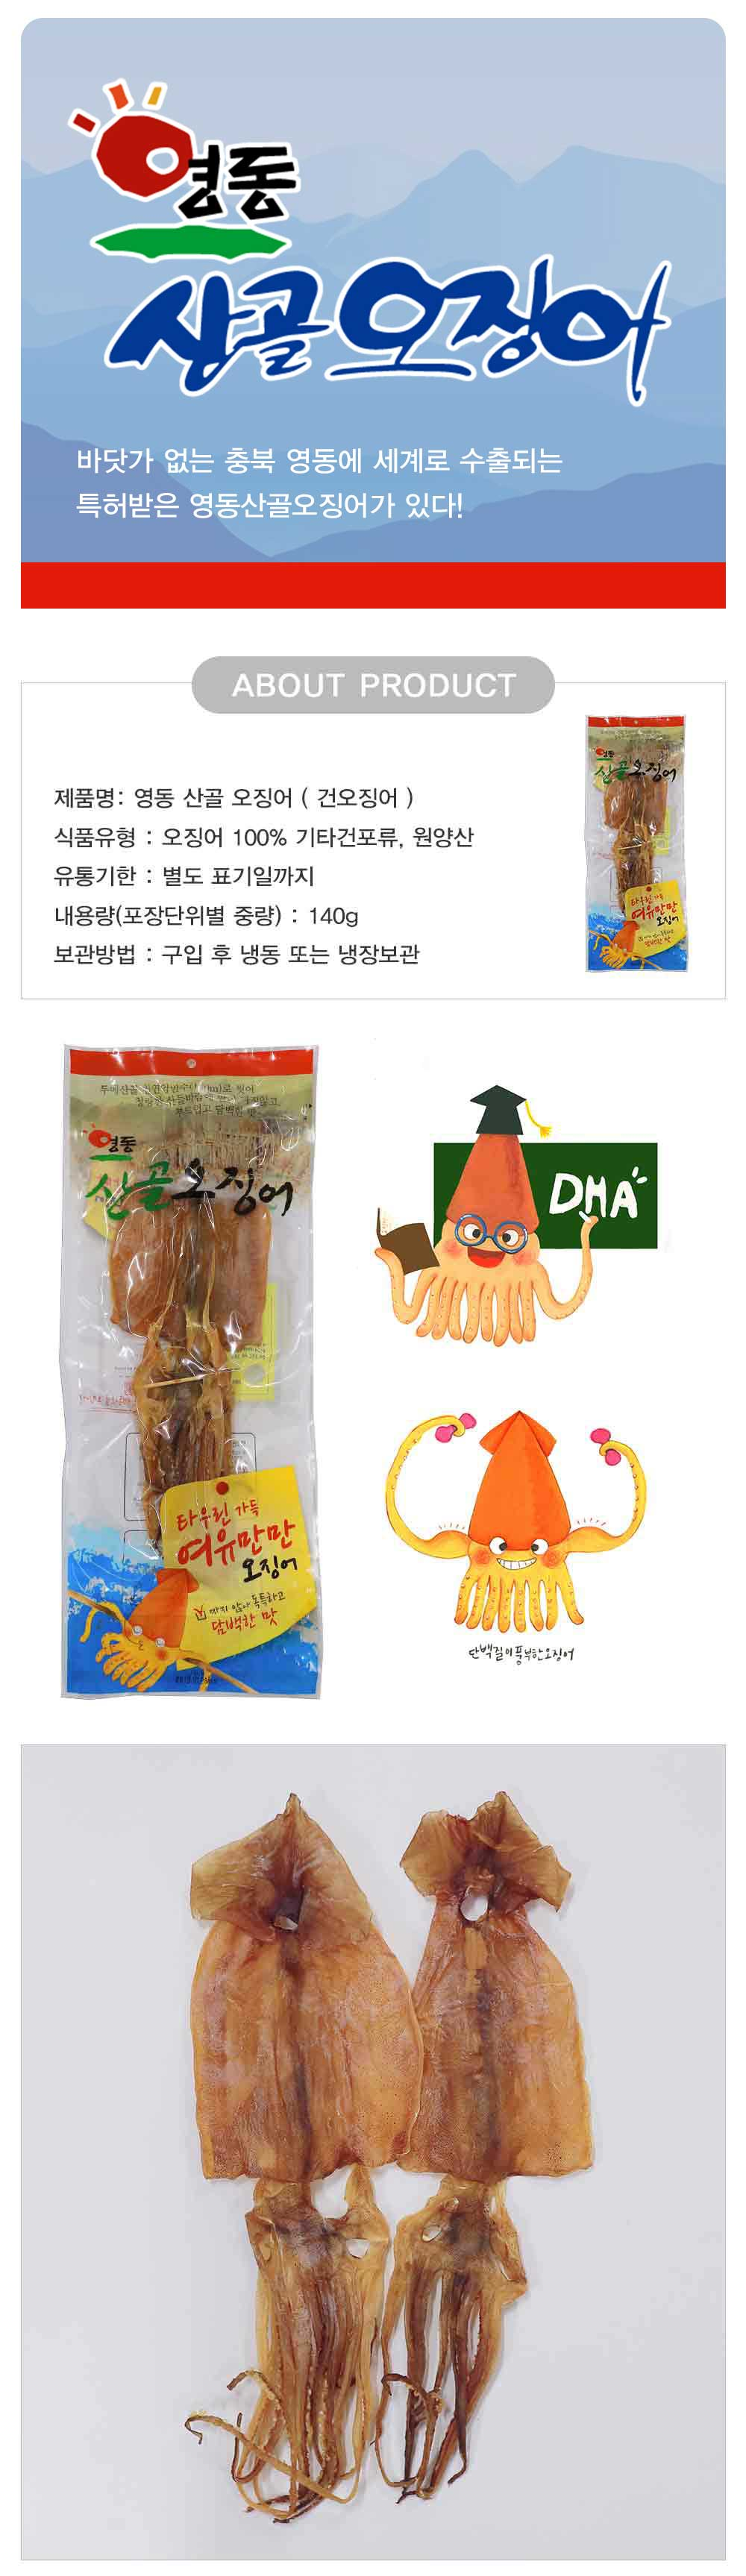 dried_squid_2_01.jpg